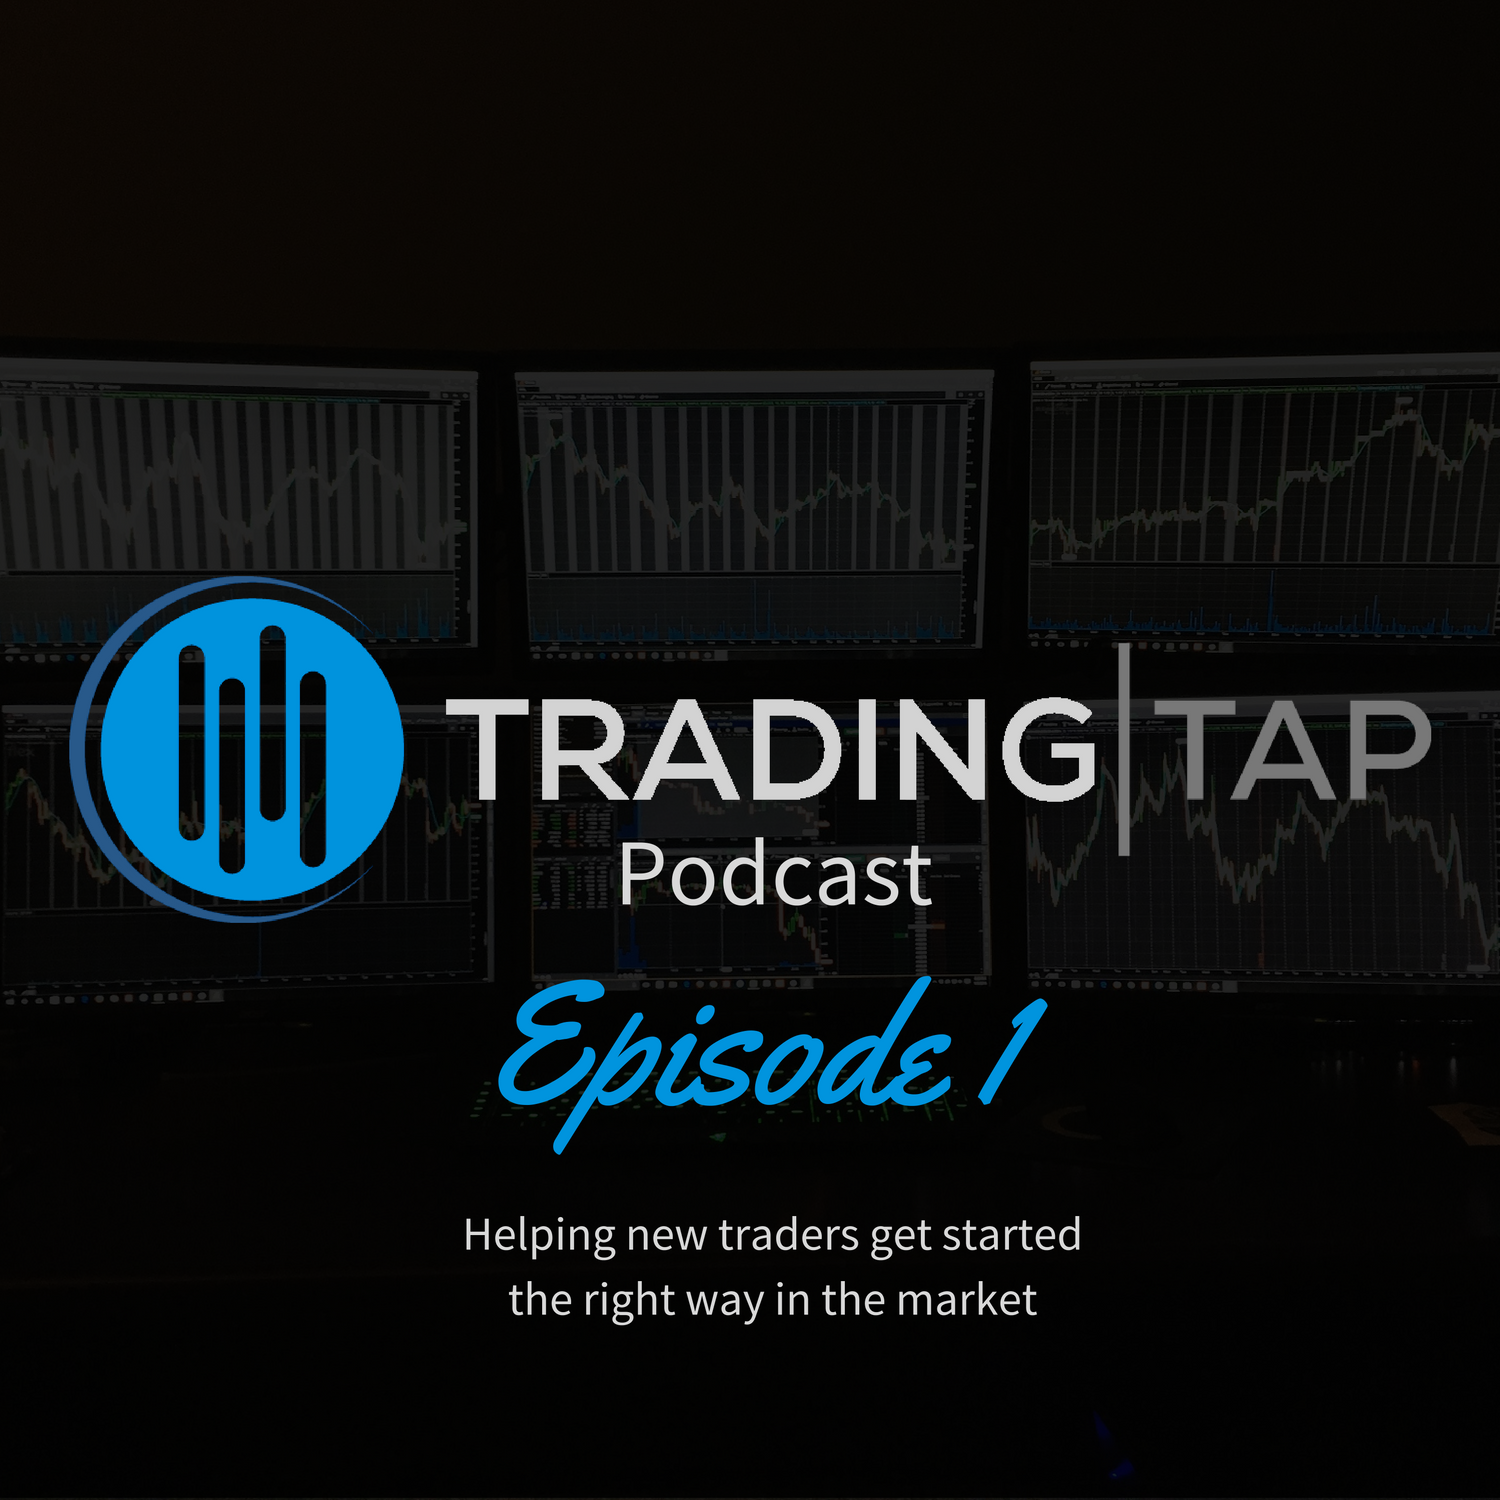 Trading Tap Podcast Episode 2